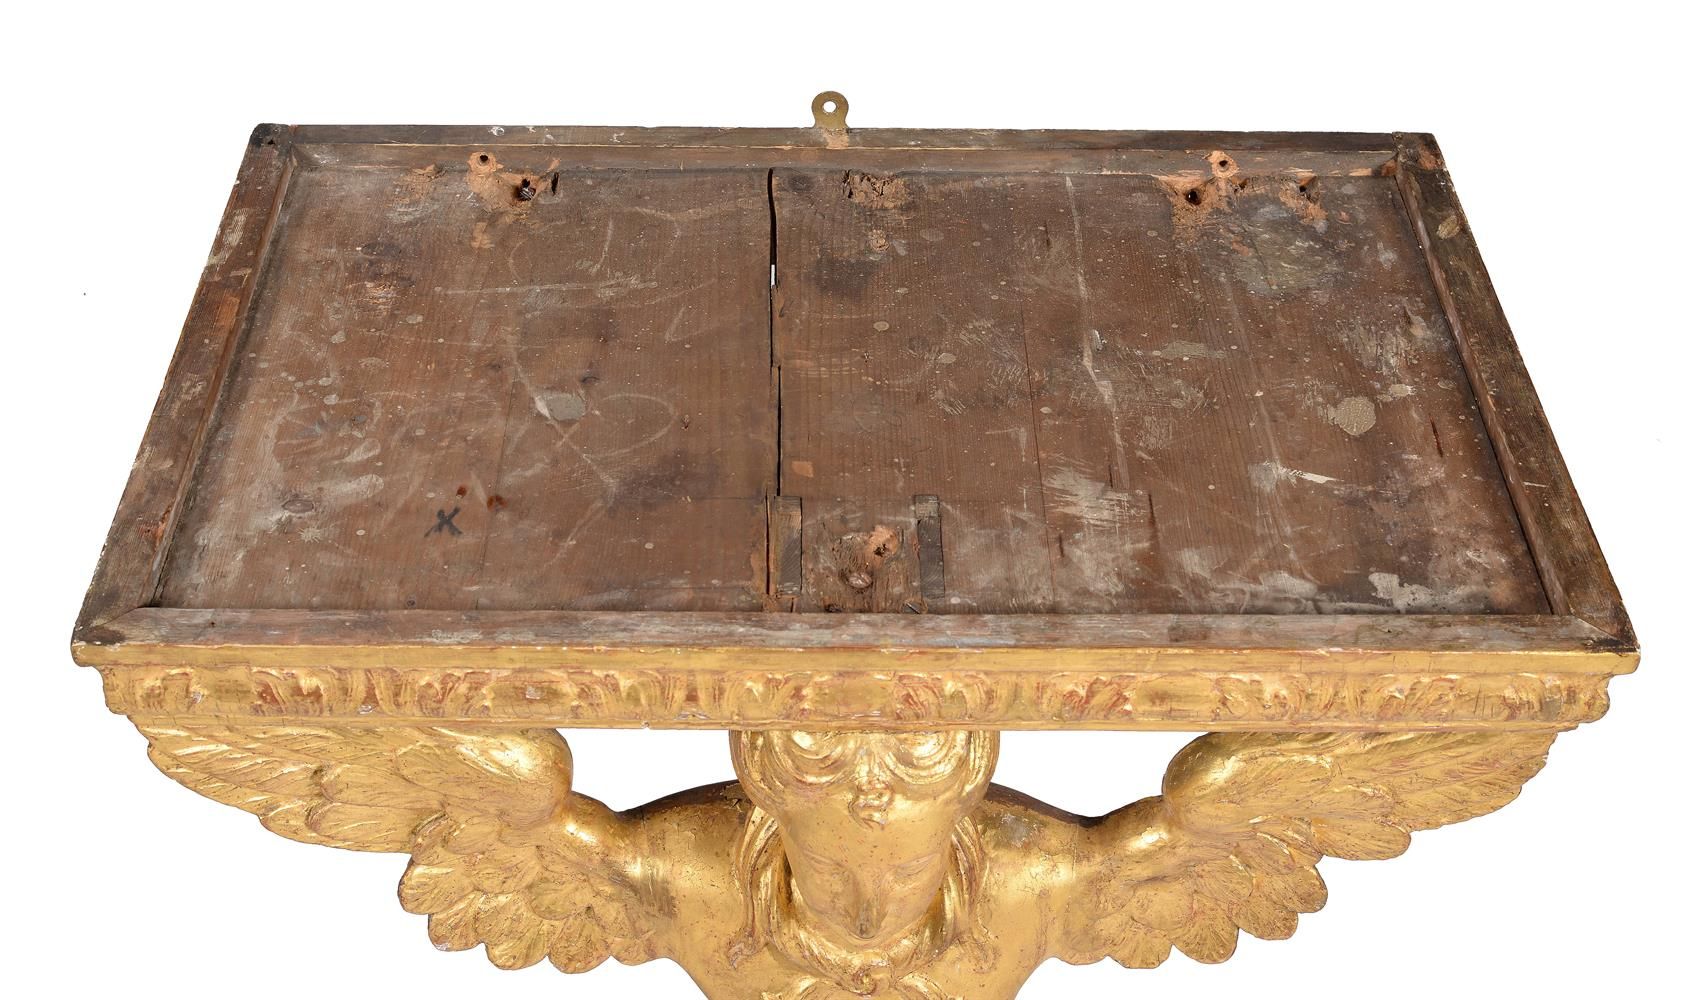 A PAIR OF GILTWOOD CONSOLE TABLES, SECOND QUARTER 18TH CENTURY AND LATER - Image 5 of 7